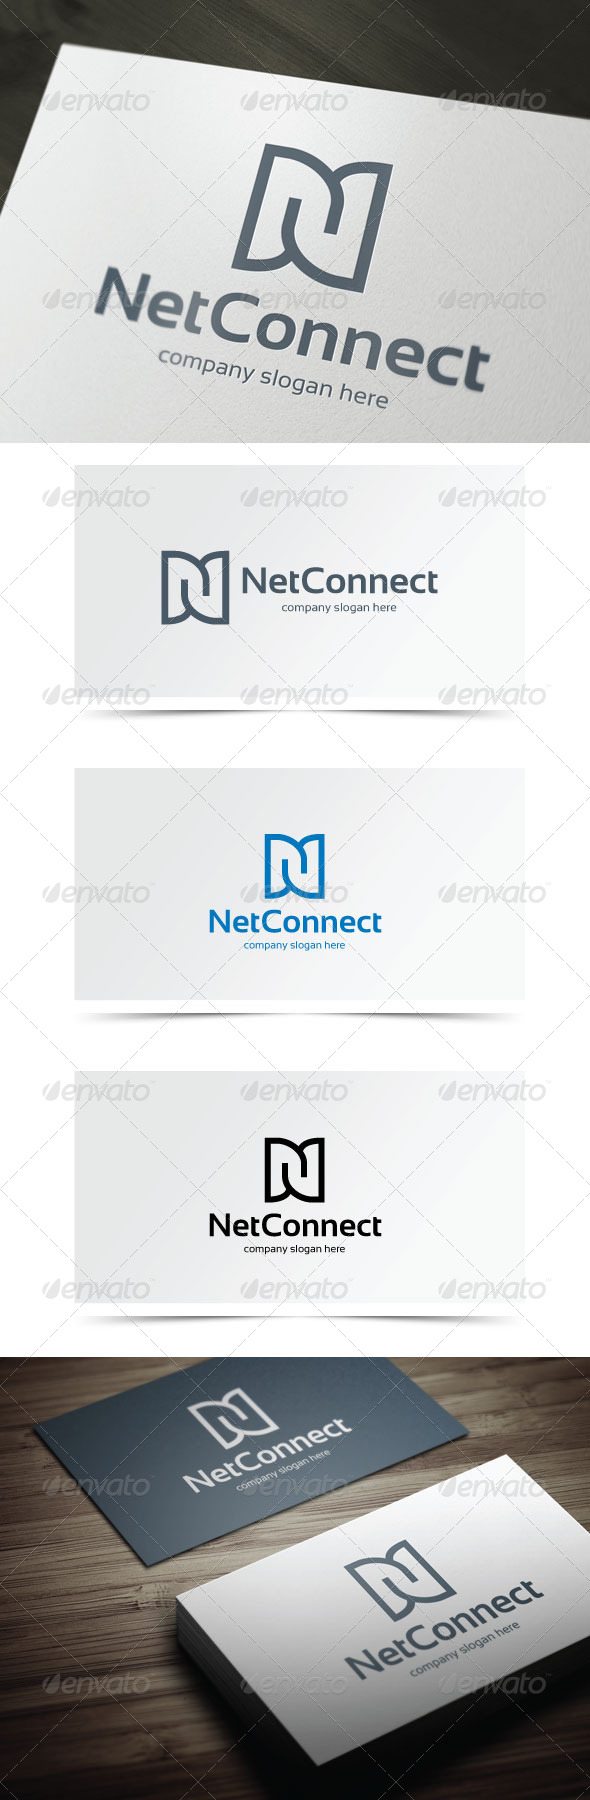 Net Connect - Letters Logo Templates